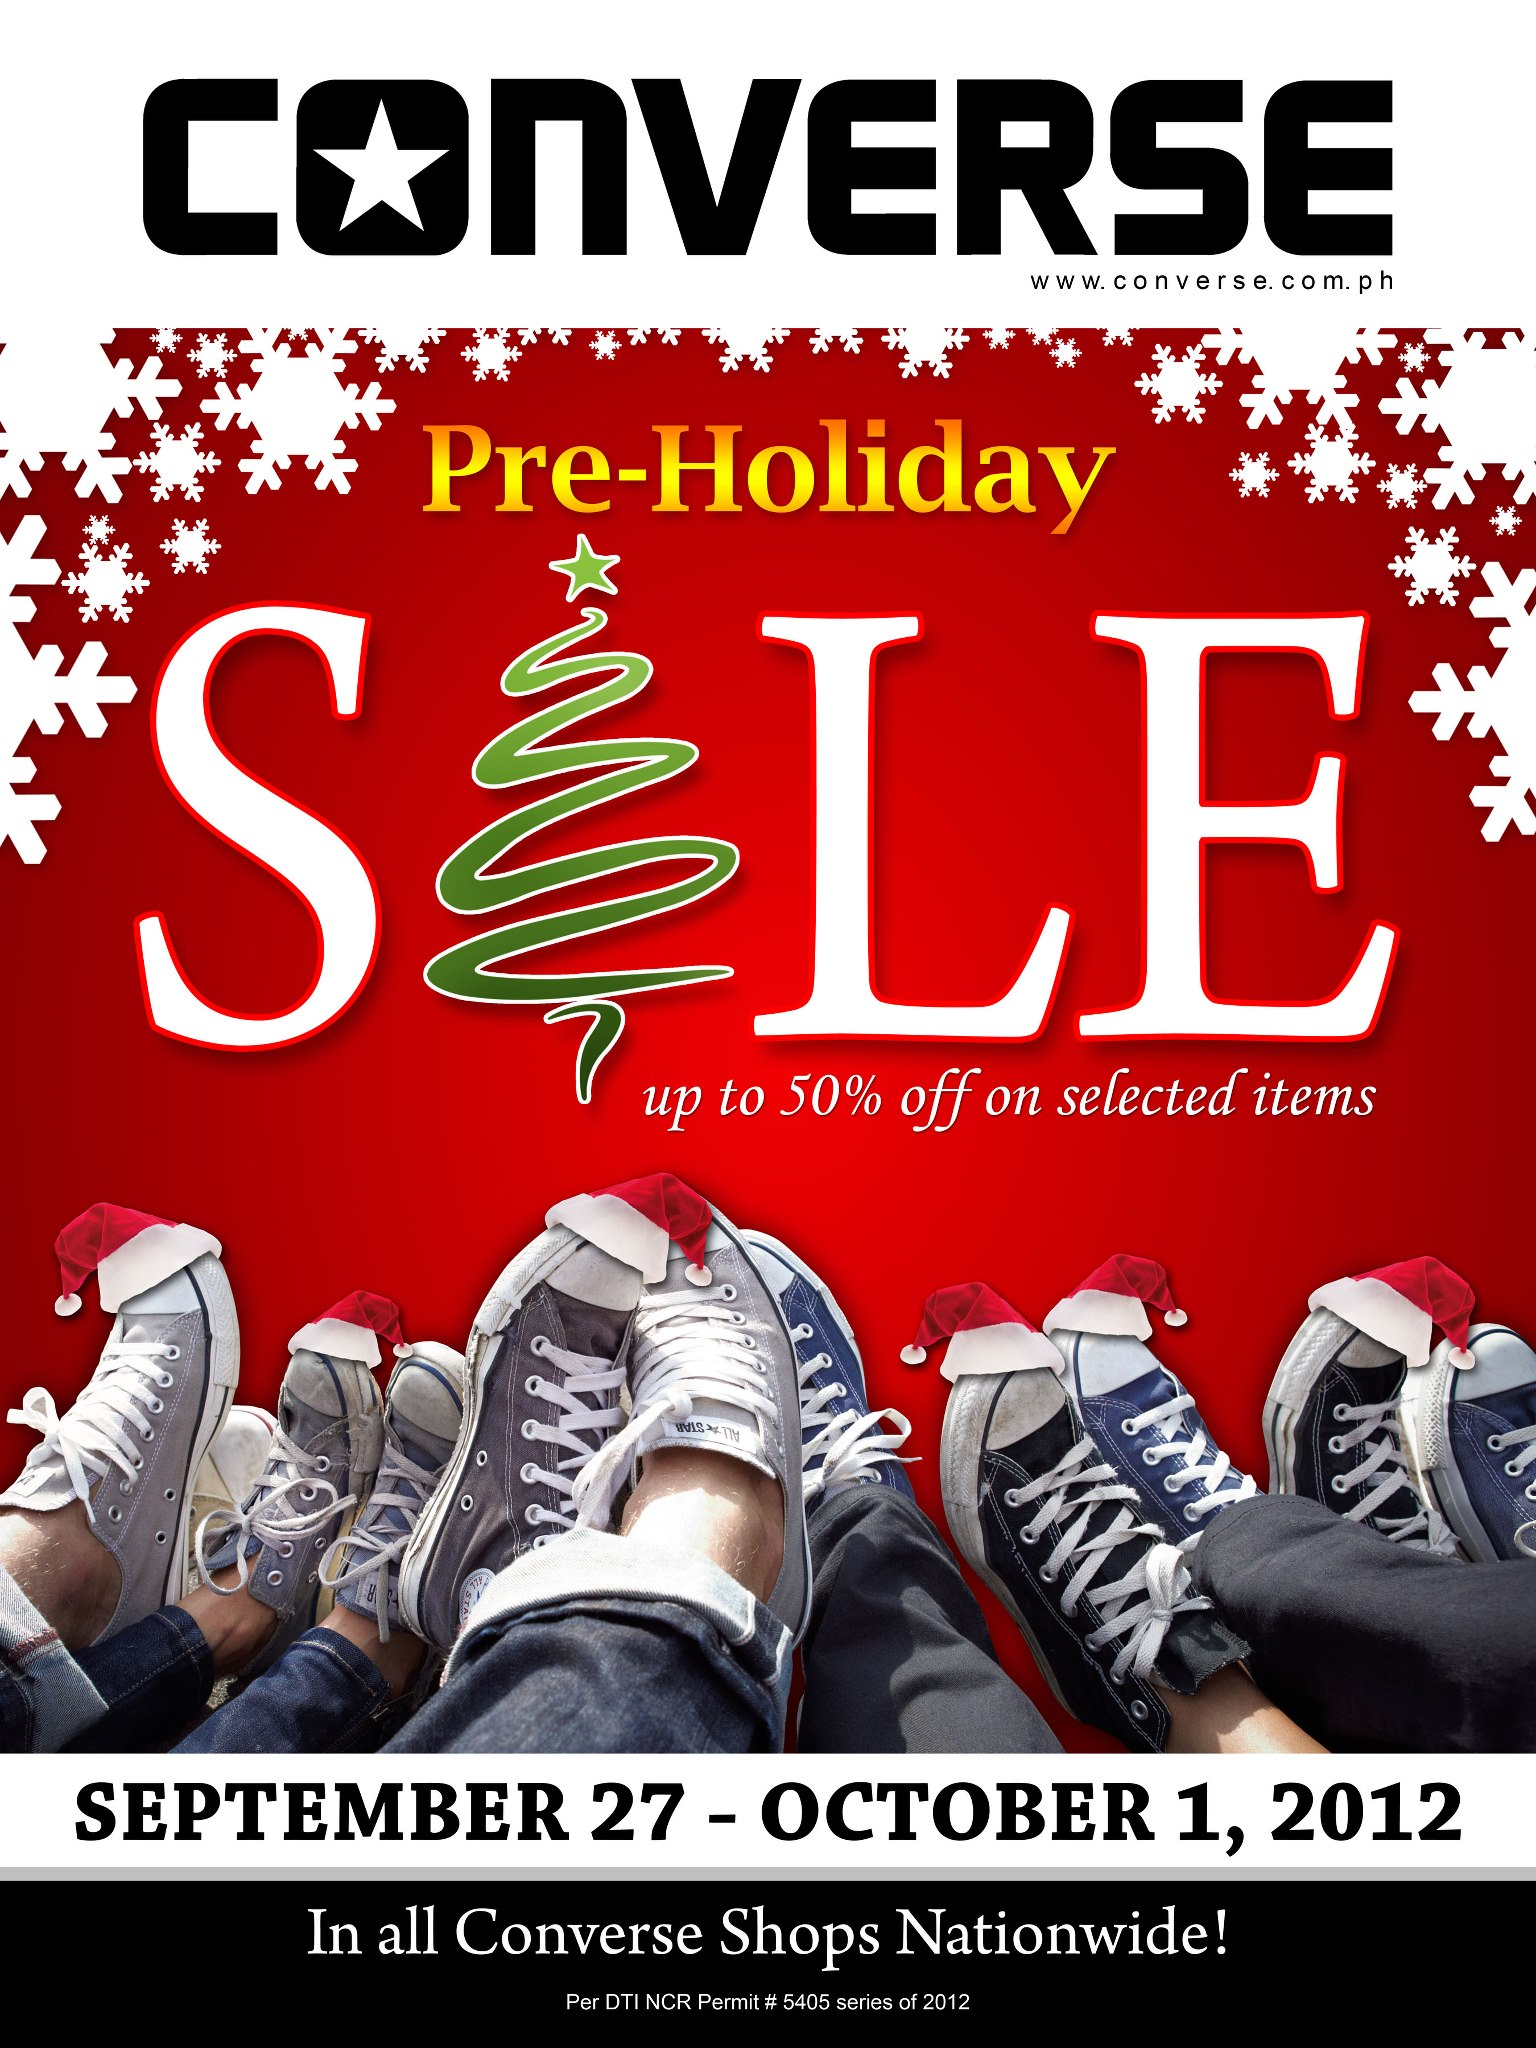 Converse Pre-Holiday Sale September 2012